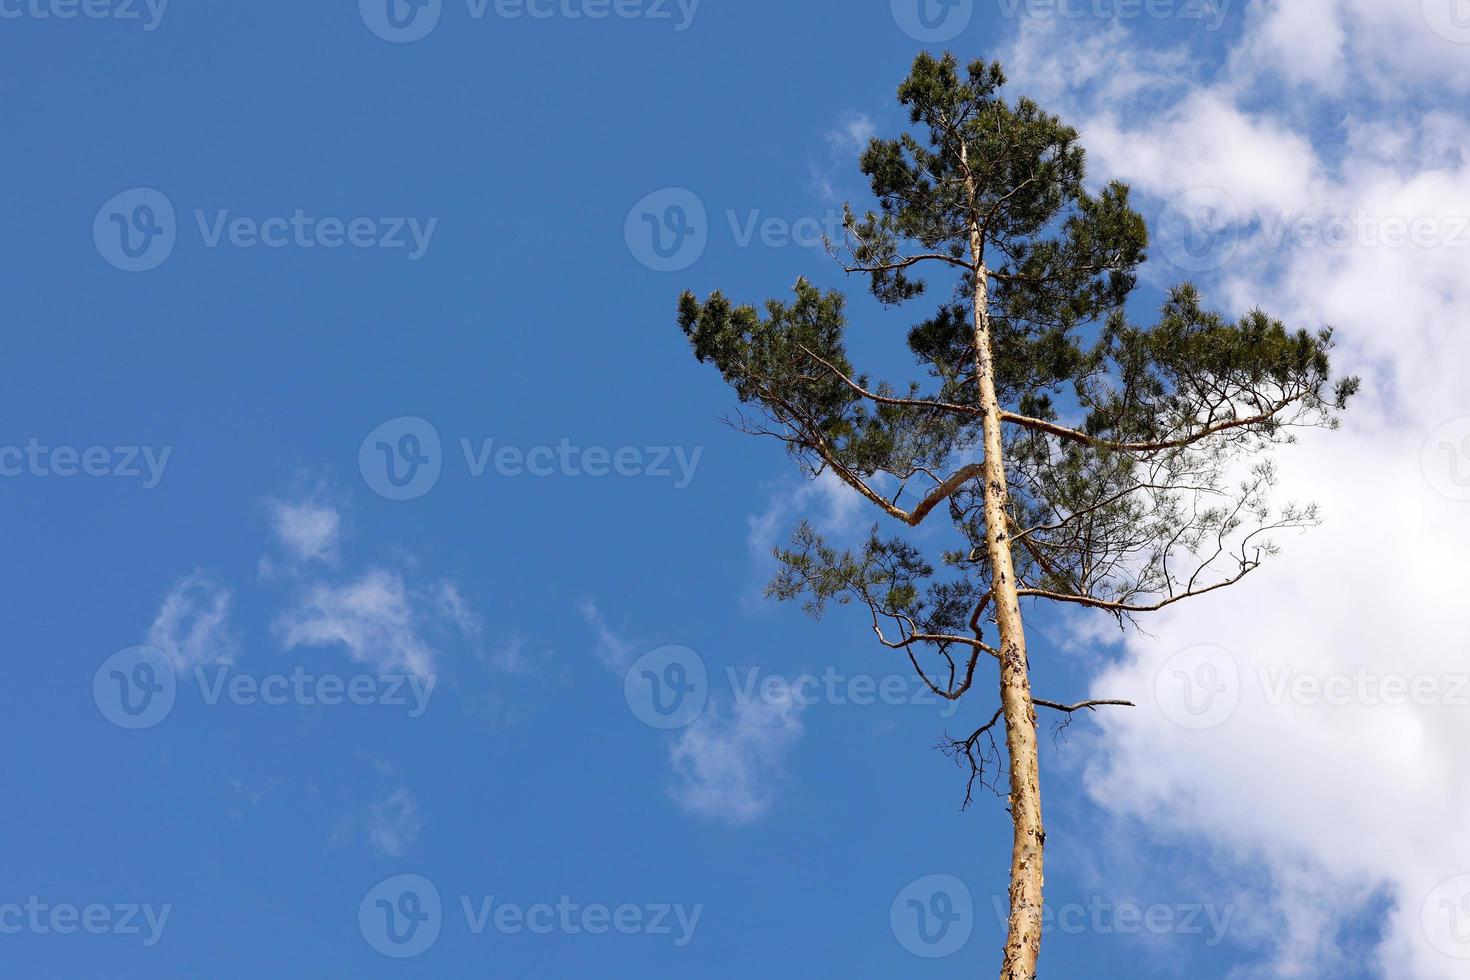 Beautiful one single tree in the forest standing hight against blue sky and white fluffy clouds, one pine tree on a background of blue sky. photo